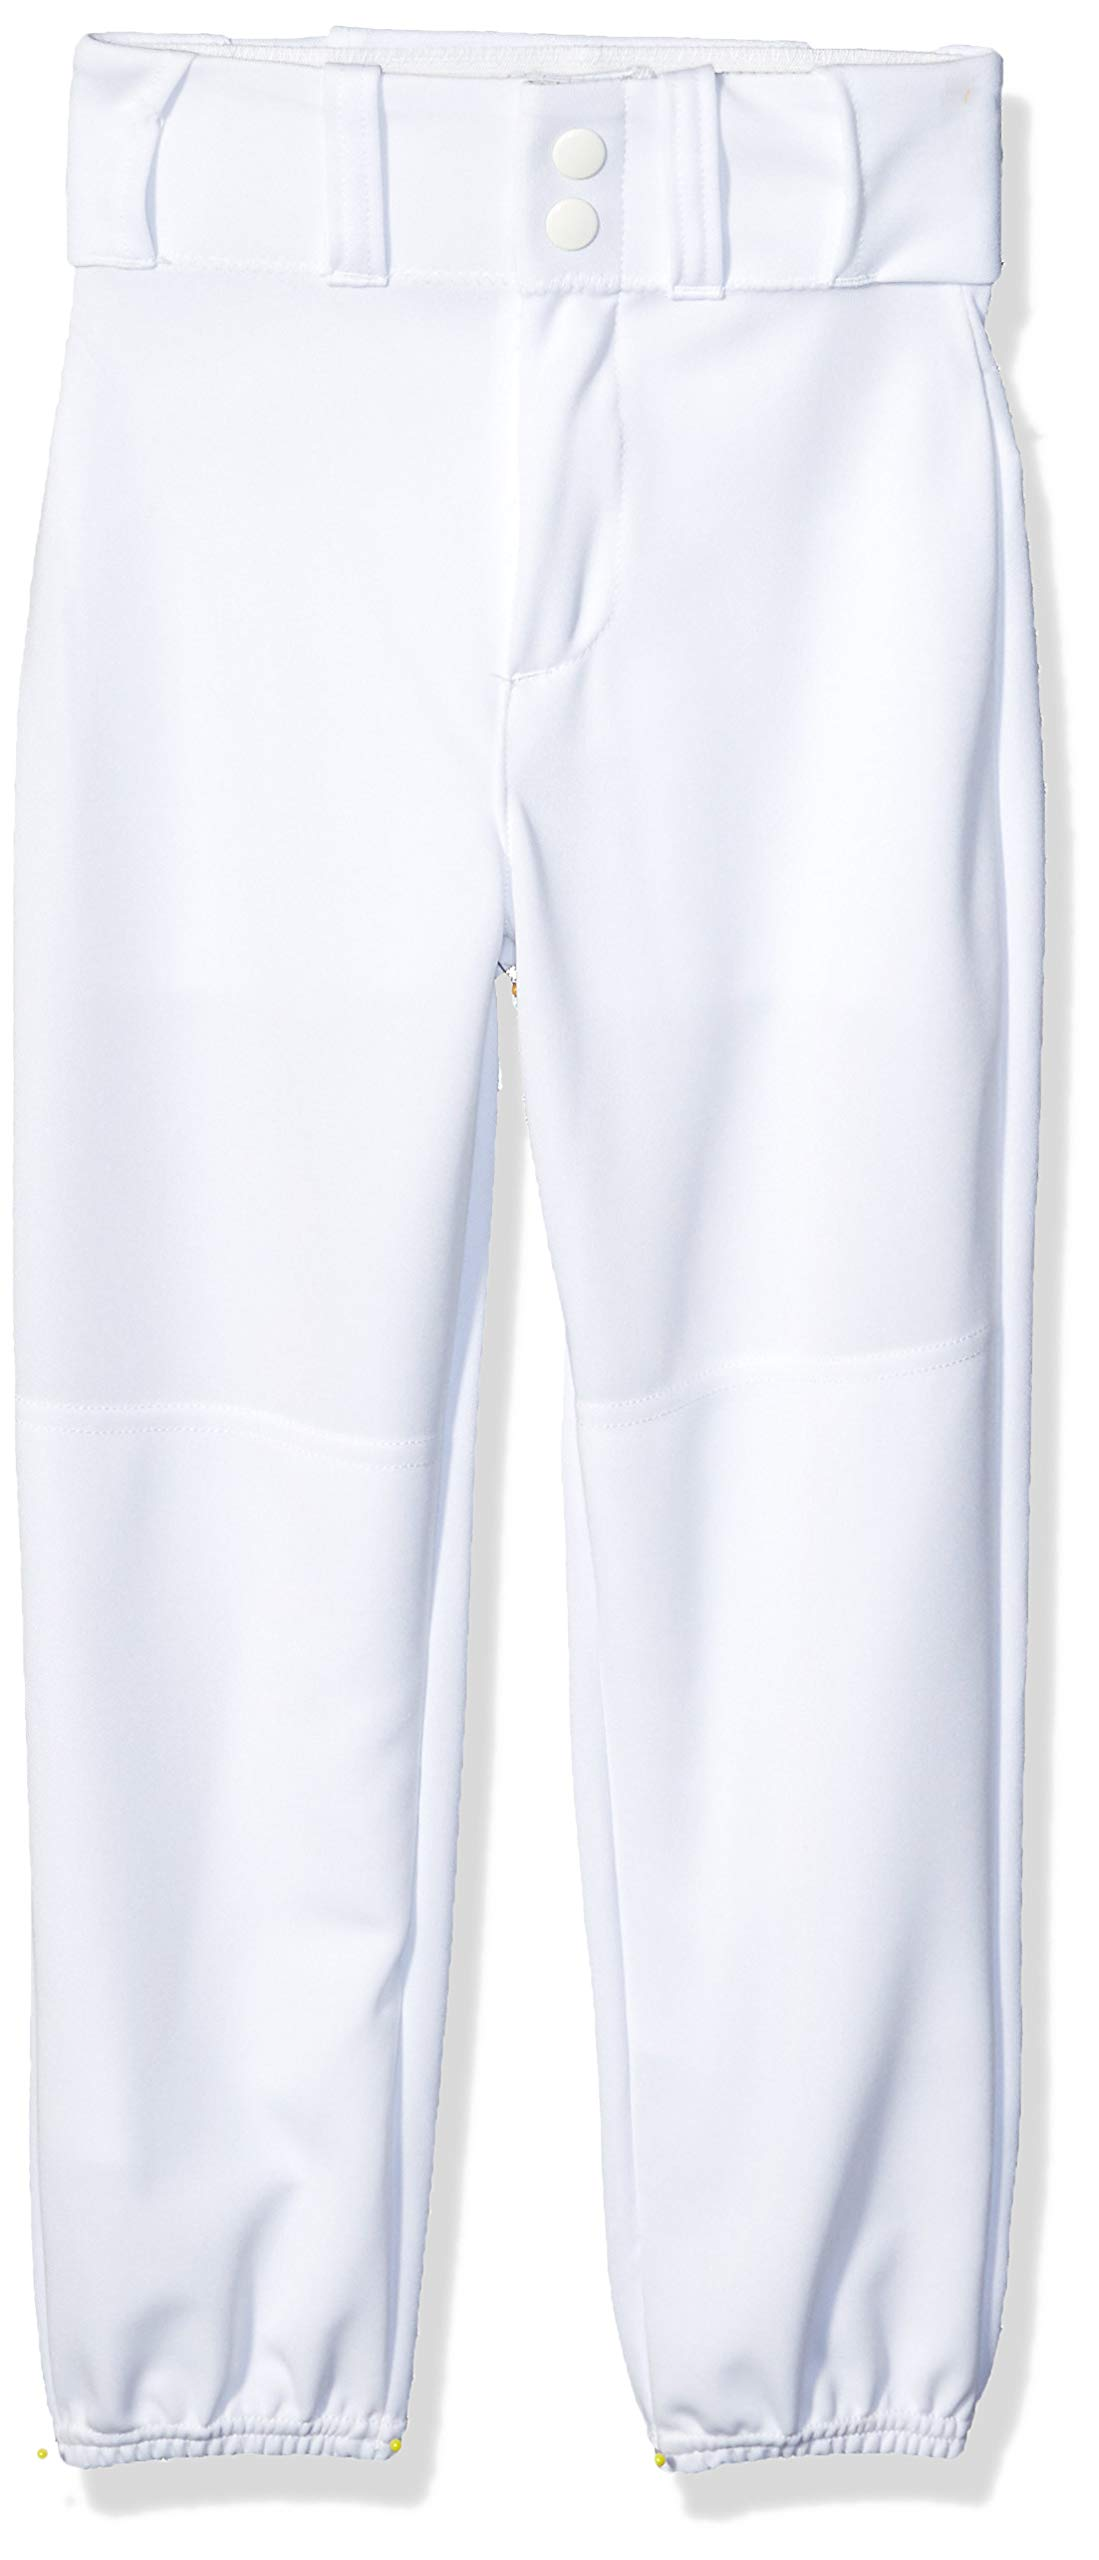 Alleson Ahtletic Boys Youth Elastic Bottom Baseball Pants, White, Large by Alleson Ahtletic